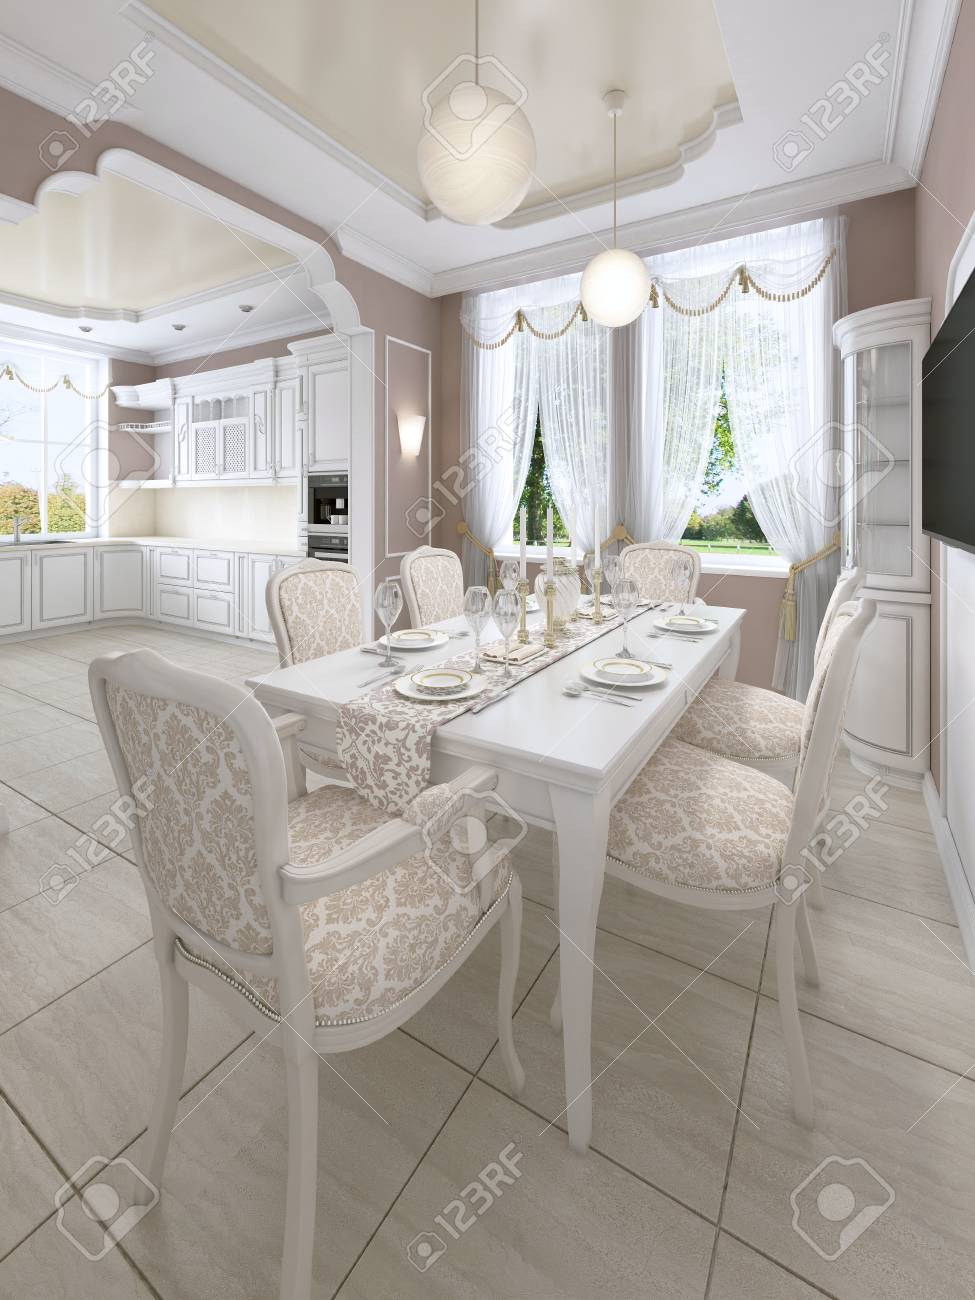 Kitchen dining room in classic style, in postel colors with white..